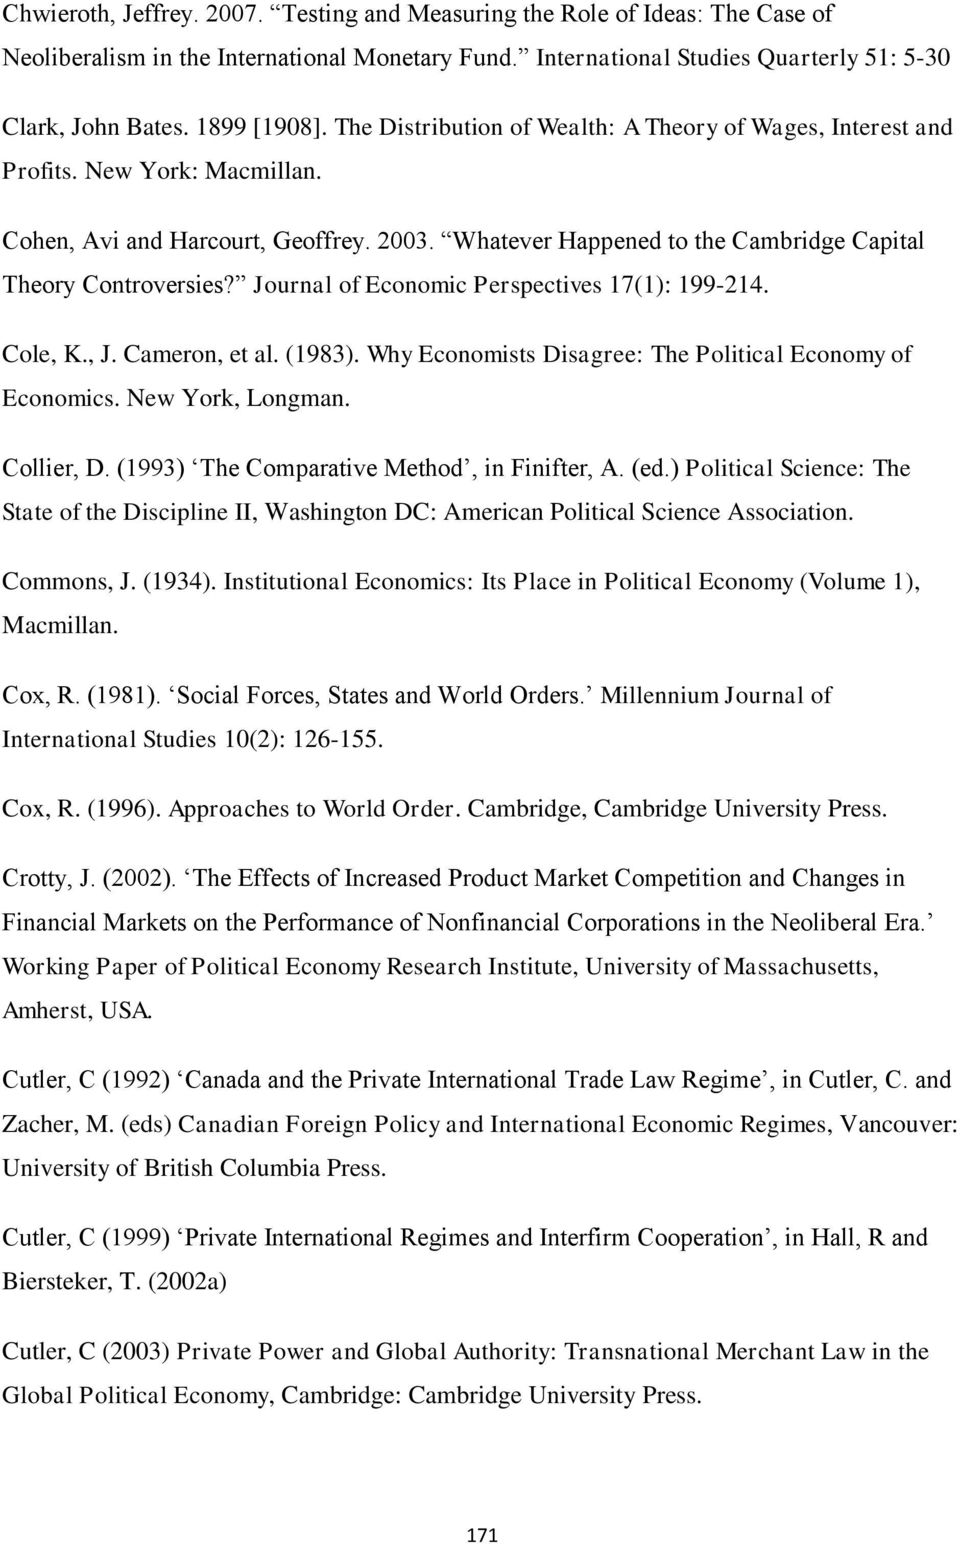 Whatever Happened to the Cambridge Capital Theory Controversies? Journal of Economic Perspectives 17(1): 199-214. Cole, K., J. Cameron, et al. (1983).